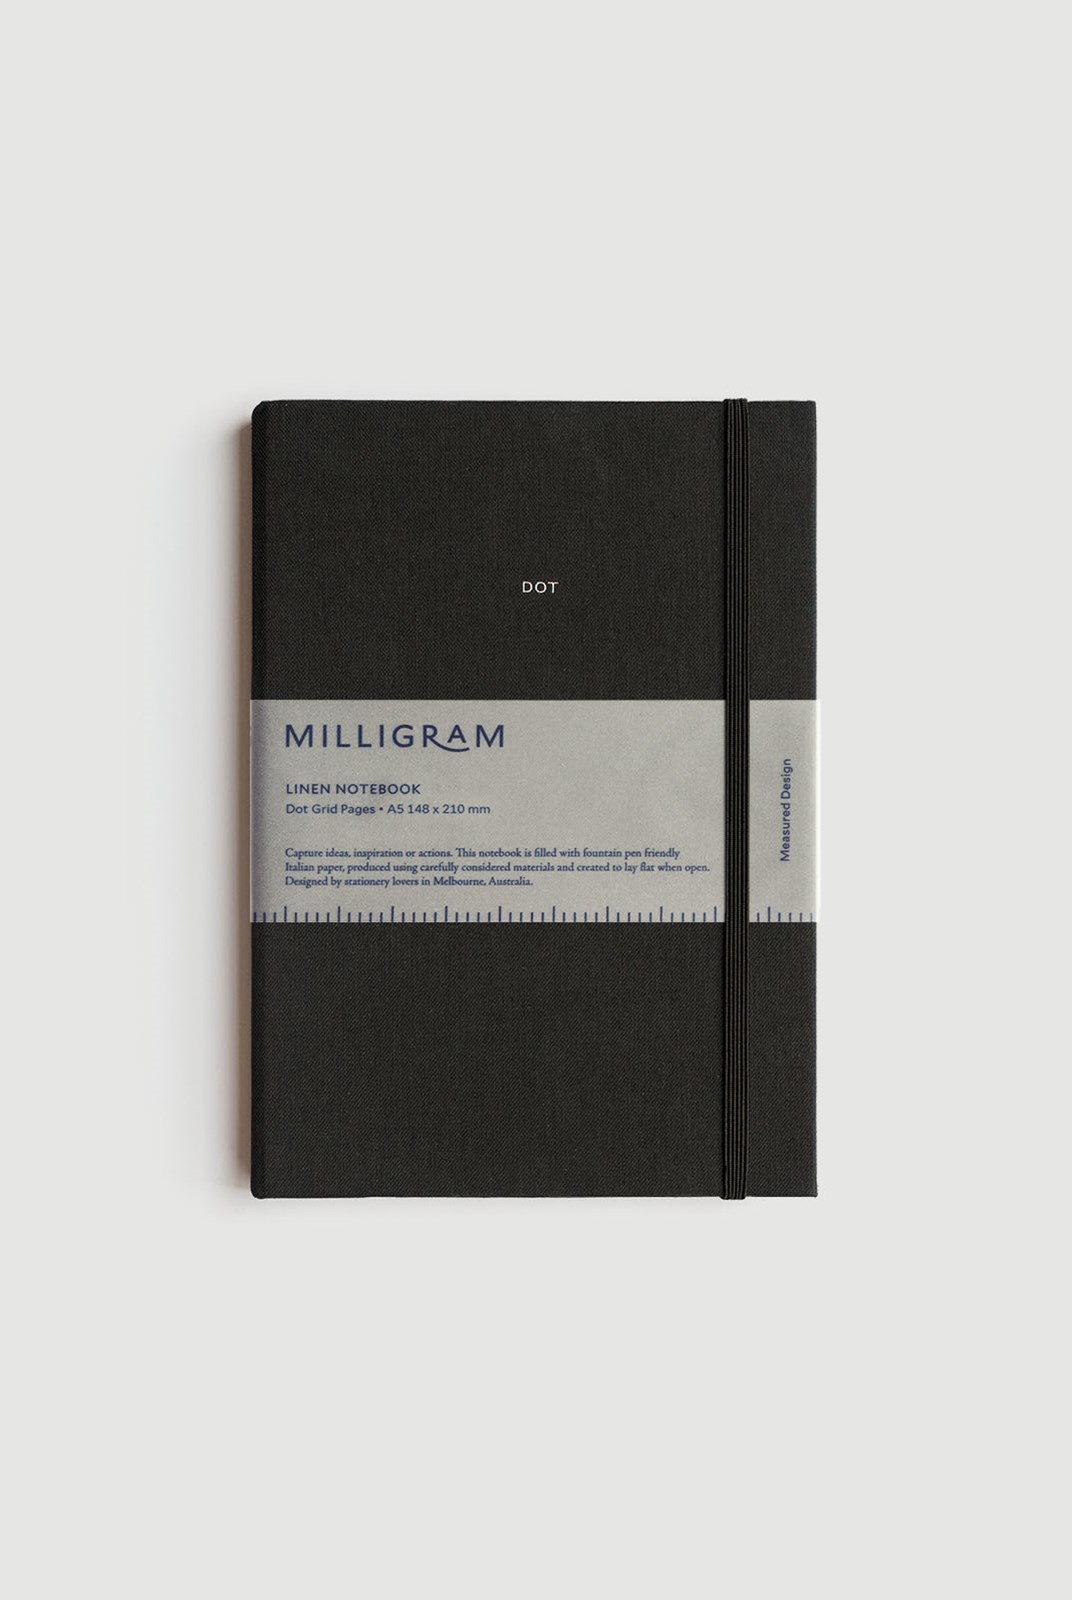 Milligram - Linen Notebook - Dot Grid - A5 - Black